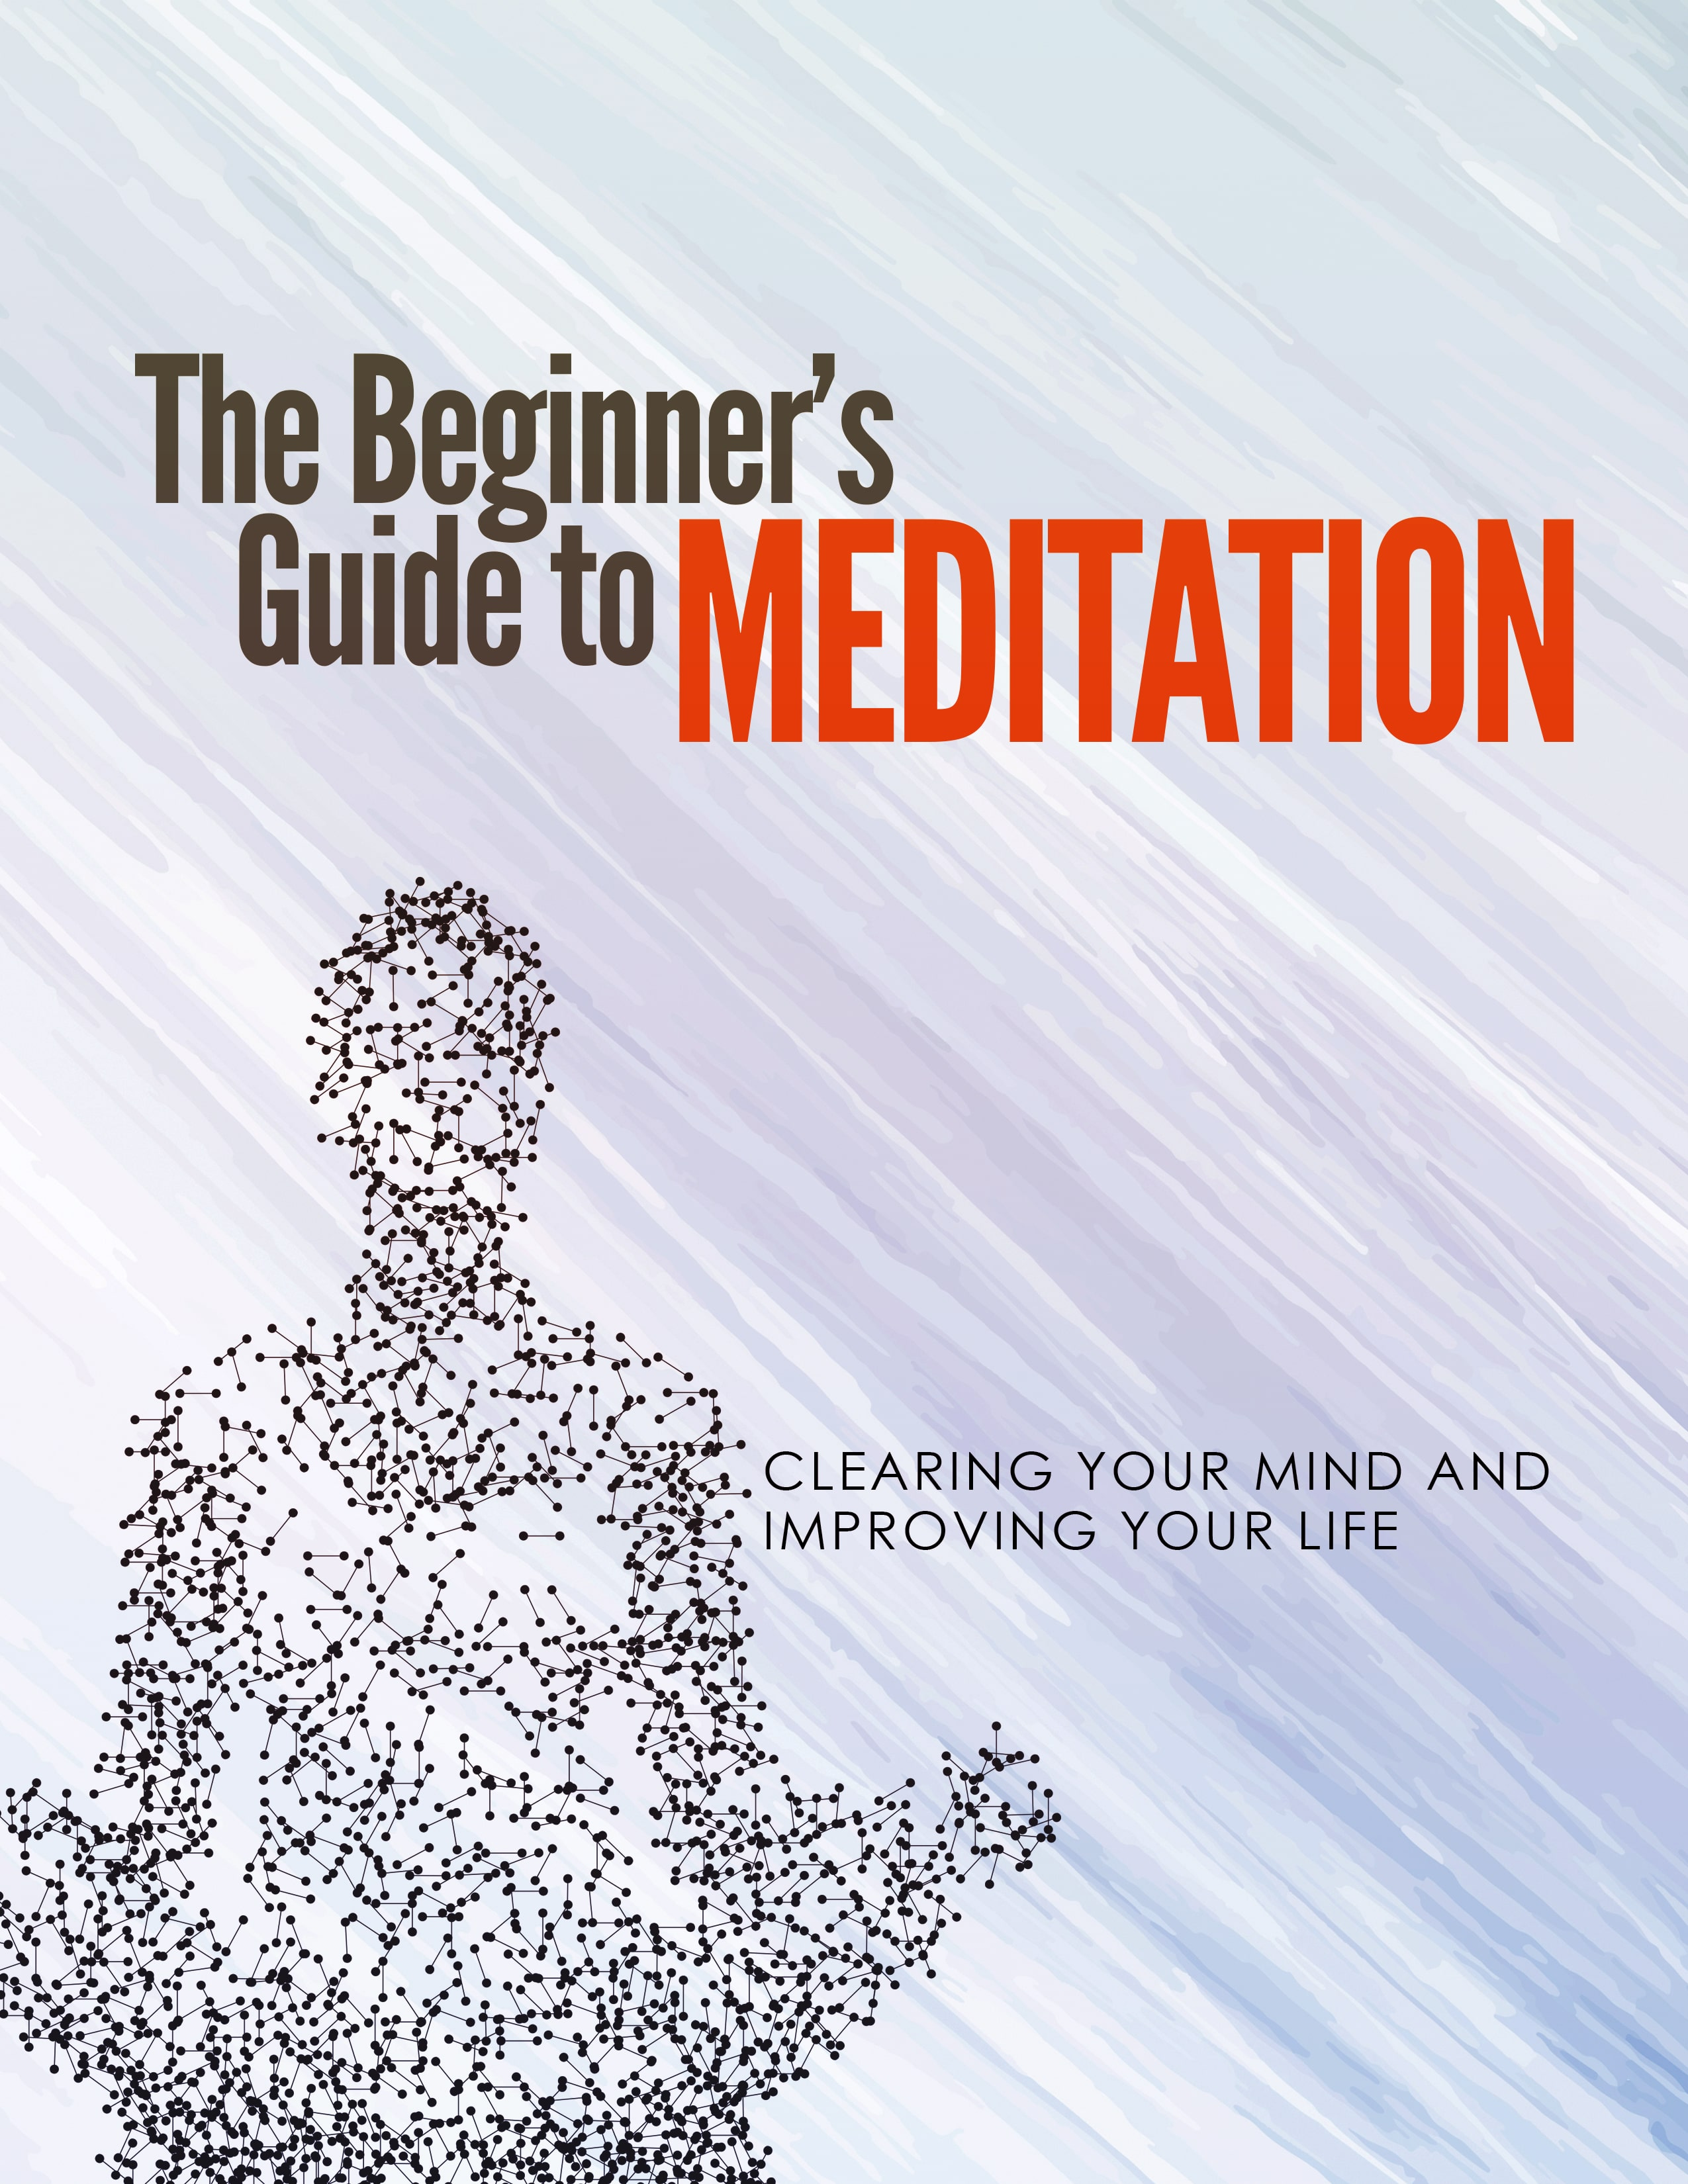 The Beginner's Guide To Meditation (Clearing Your Mind And Improving Your Life) Ebook's Ebook Image